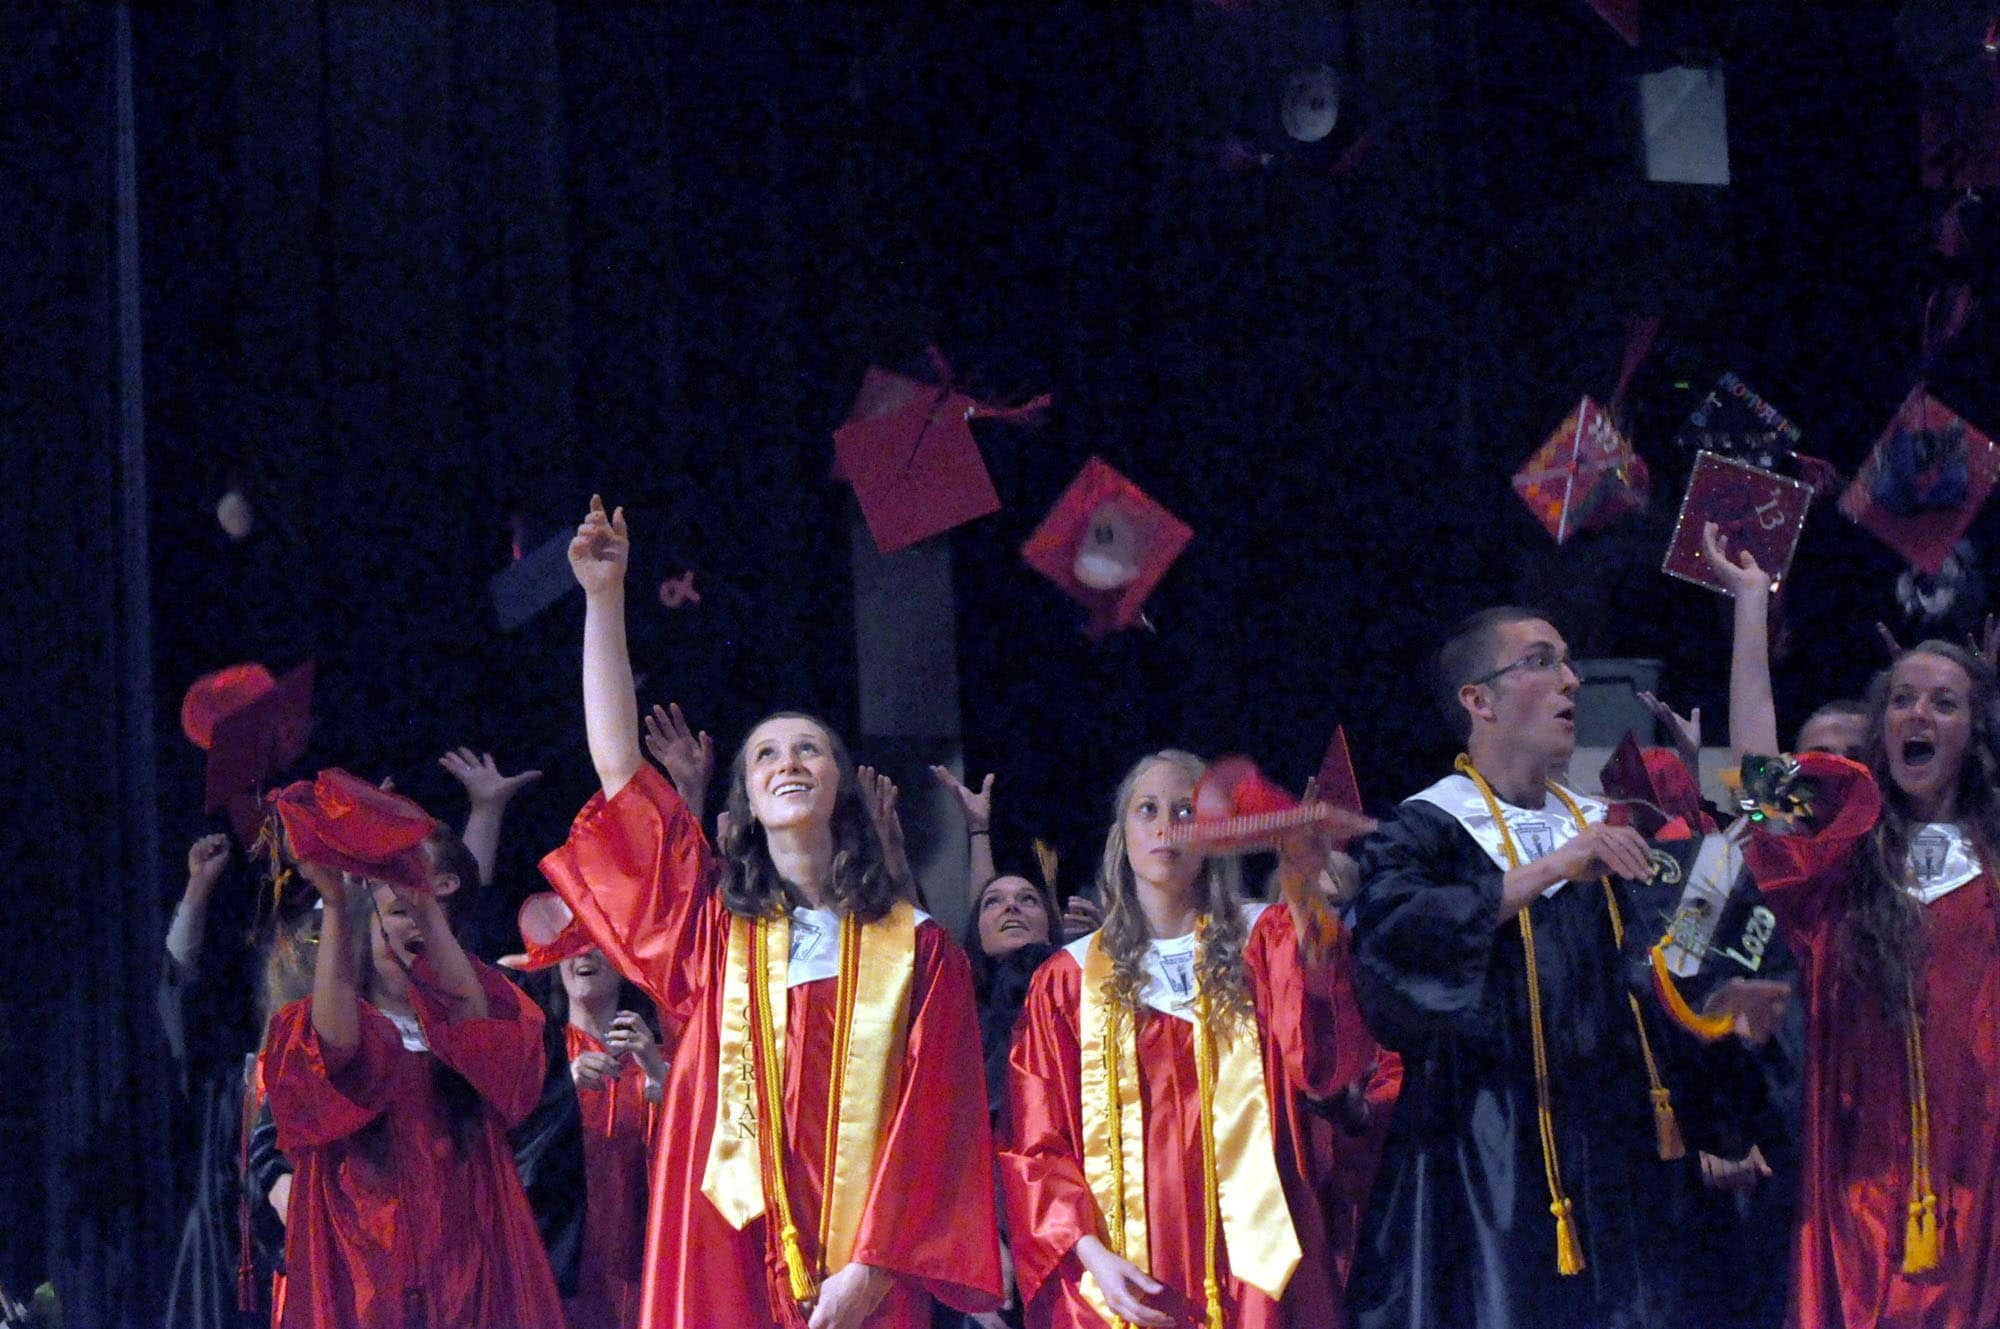 Sayre High School's graduating class tosses their caps in the air at the end of the graduation on Friday, June 7, 2013, in Sayre, Pa. The high school graduated 61 seniors this year. (AP Photo/The Daily Review, Brian Fees)